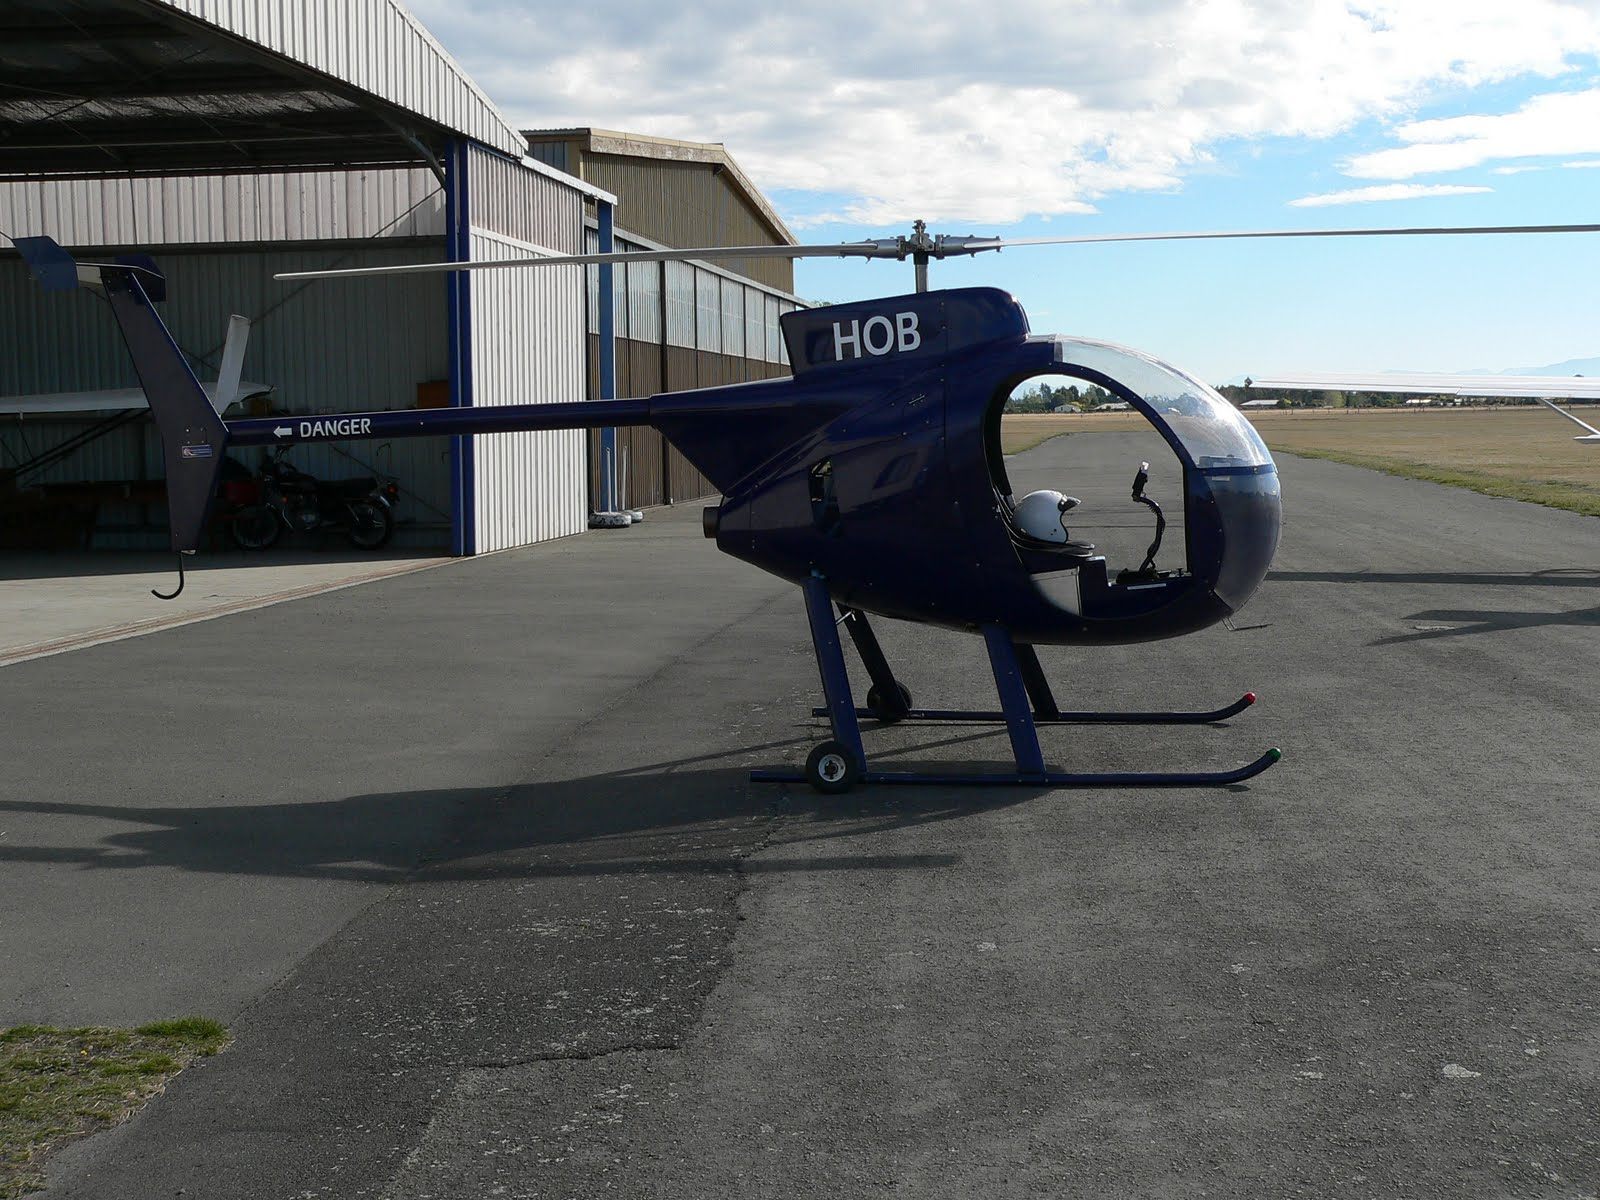 revolution mini 500 helicopter for sale with Alpine Aviation T500 Zk Hob on Viewtopic also G 6llpufn0vb13hdperc6oja0 likewise 7C 7Cimg823 imageshack us 7Cimg823 7C42 7Cimg0658zn additionally Alpine Aviation T500 Zk Hob as well Men New Dawn Men Fans Unite Characters Open T56850.